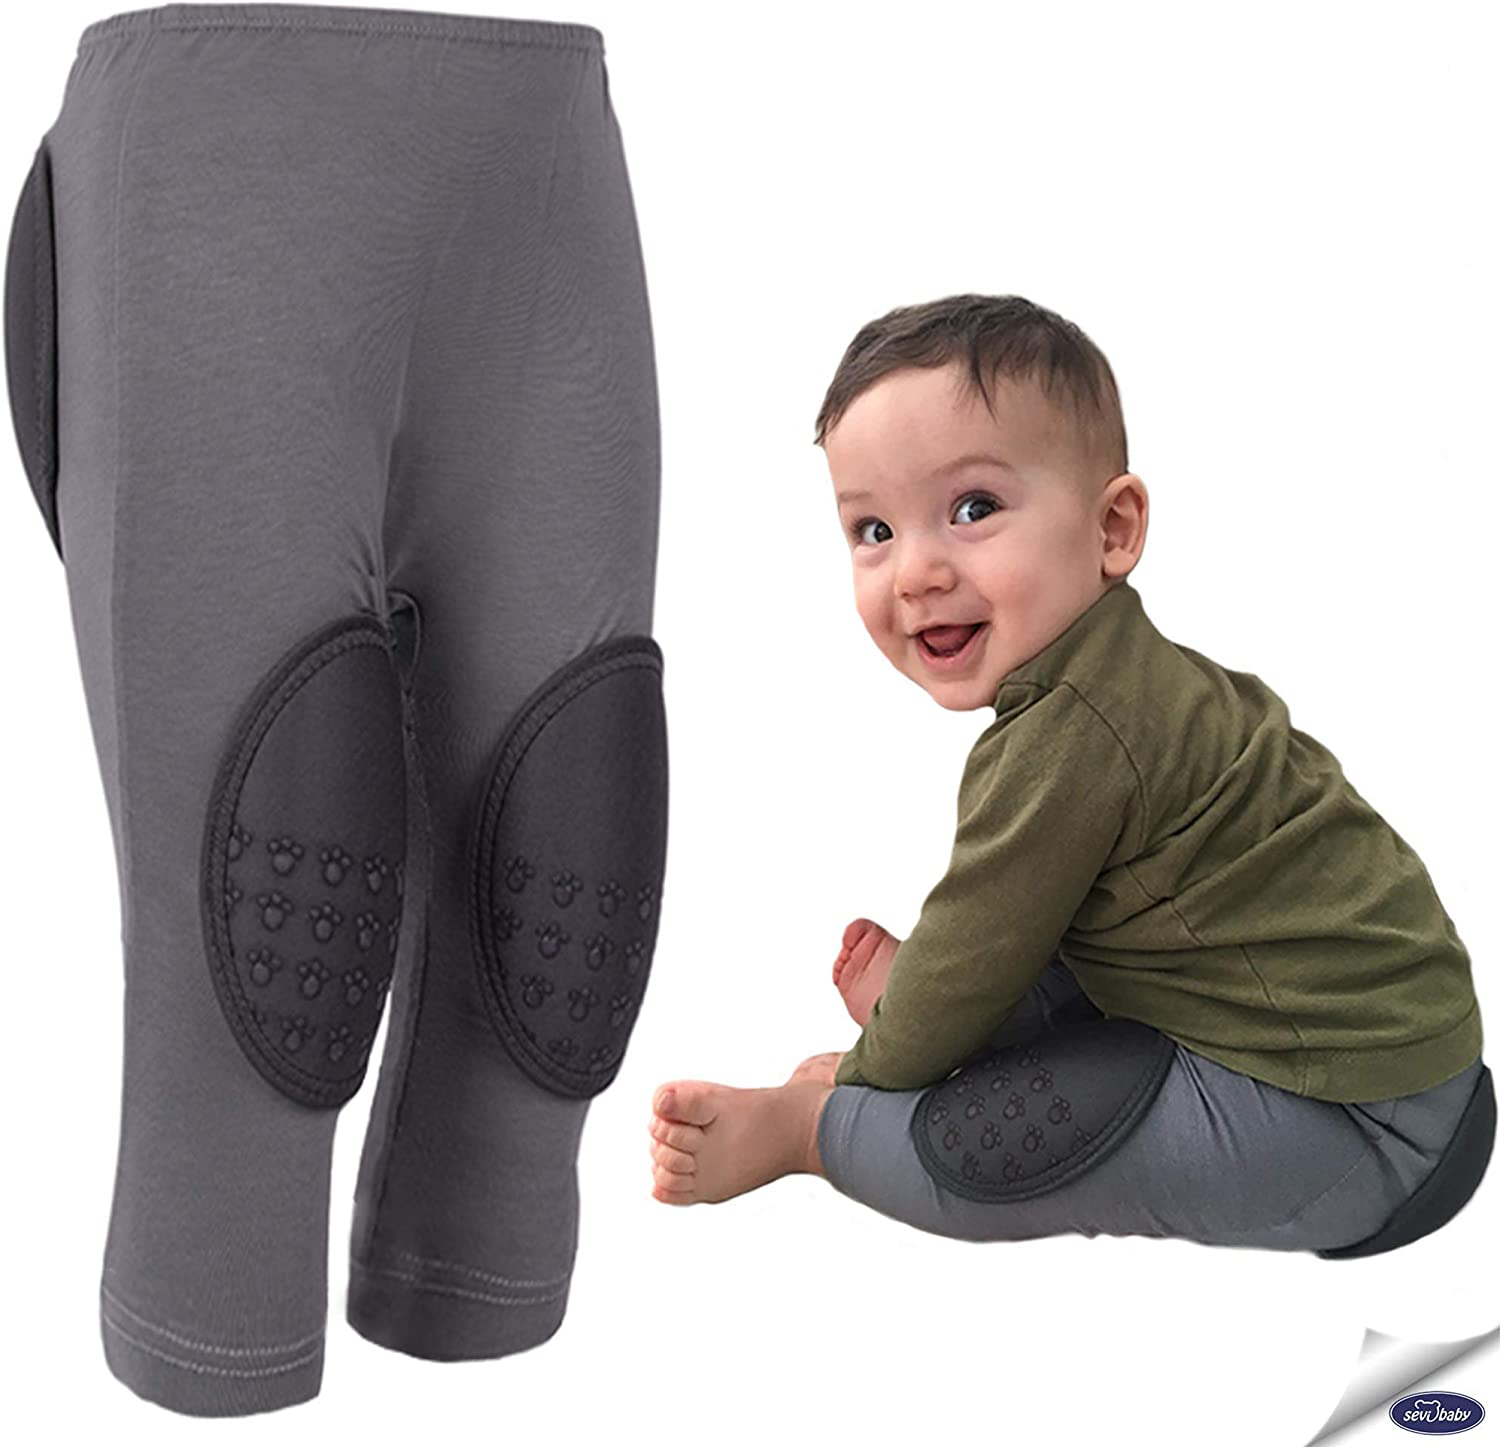 Sevi Baby Protective Pants for Babies, Padded Pants for Toddler, Patented Crawling Pants for Babies (Made in Turkey) - Gray: Clothing